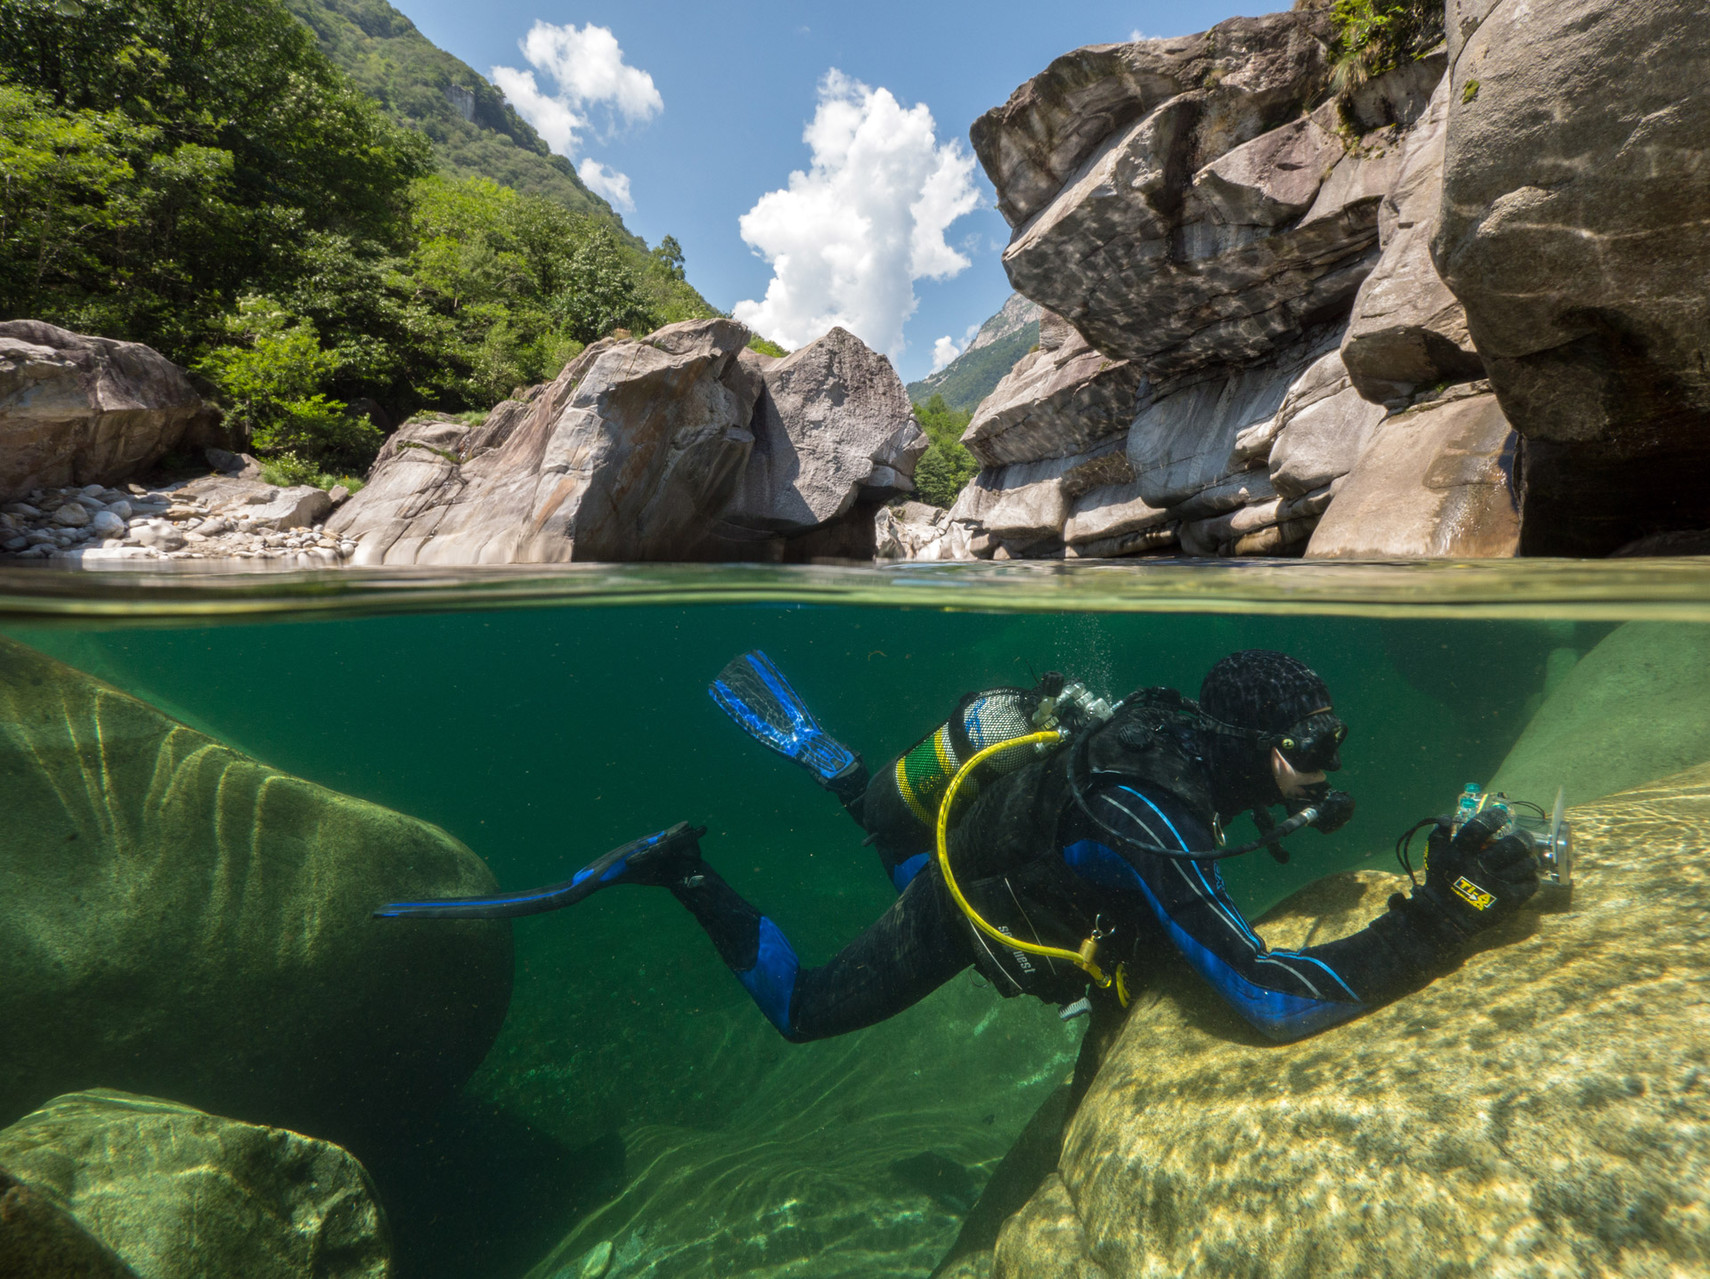 River diving in the crystal clear waters of Verzsasca